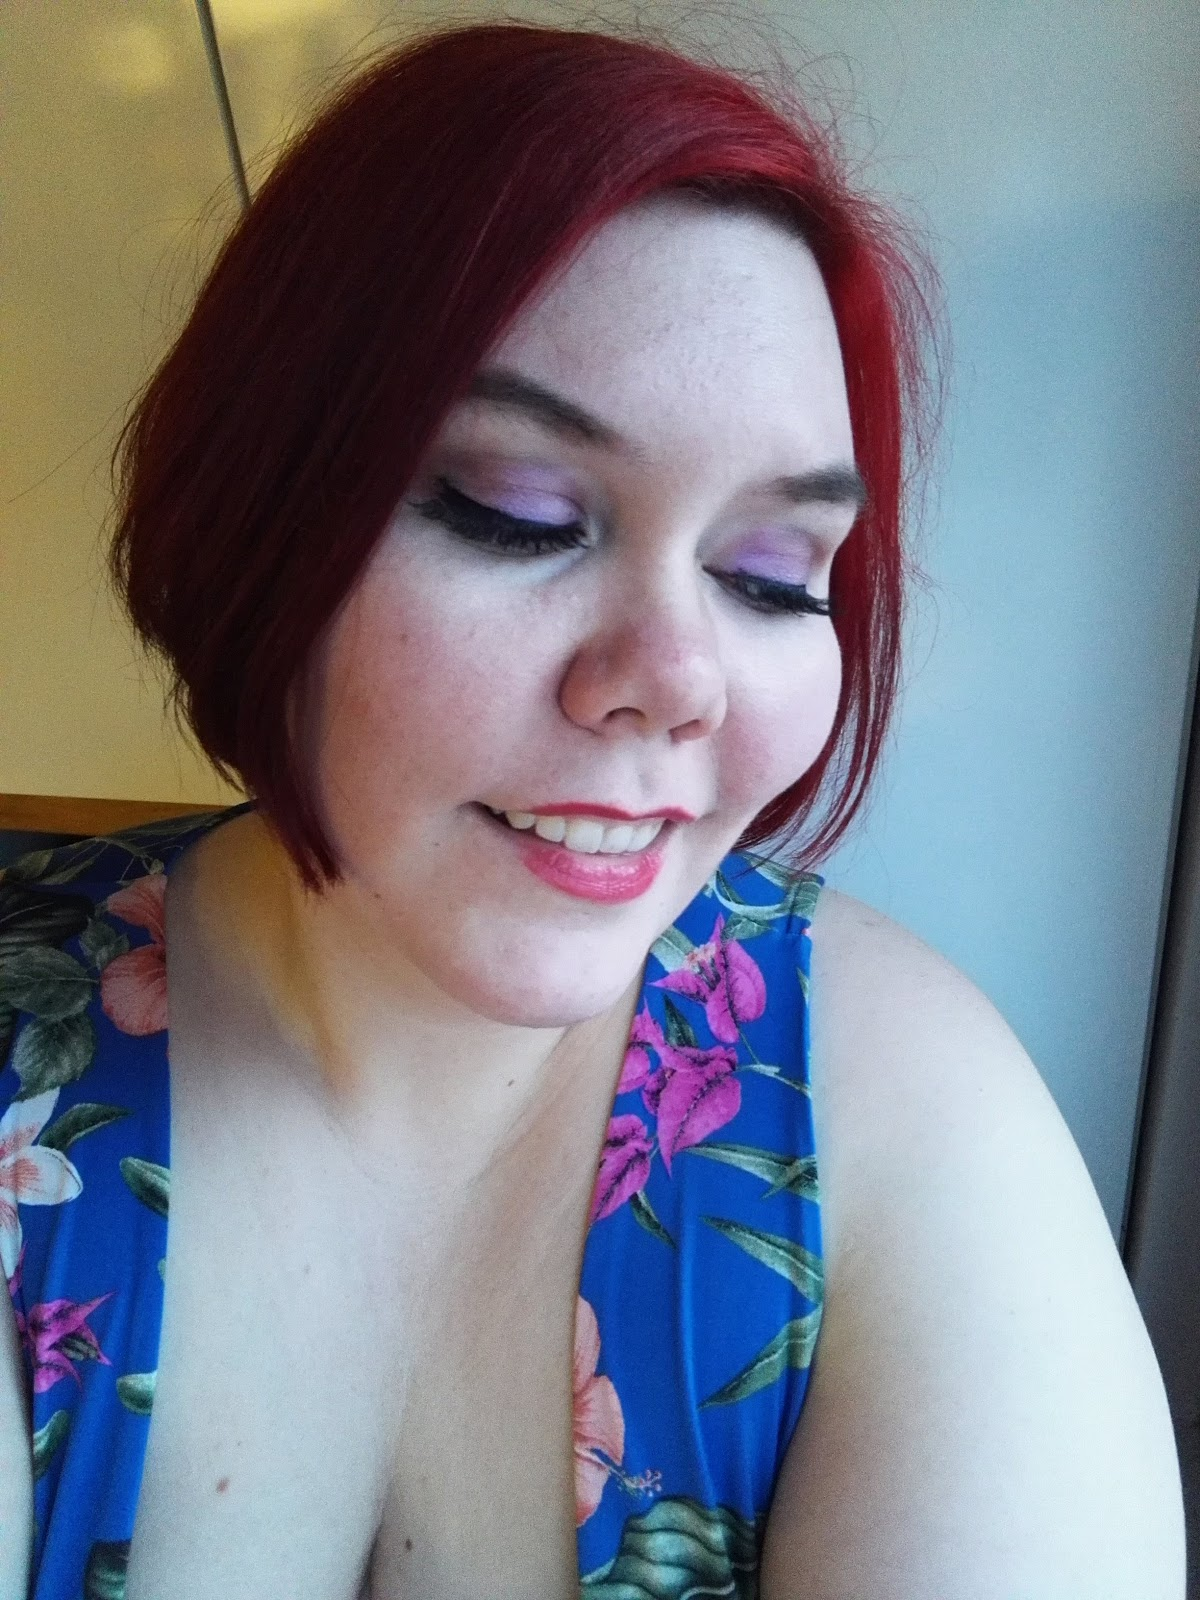 5c6dc85fa26 I've used Eylure lashes before, and I've always really liked the quality.  This time I tried the Eylure Texture 117 lashes. These are great because  they ...